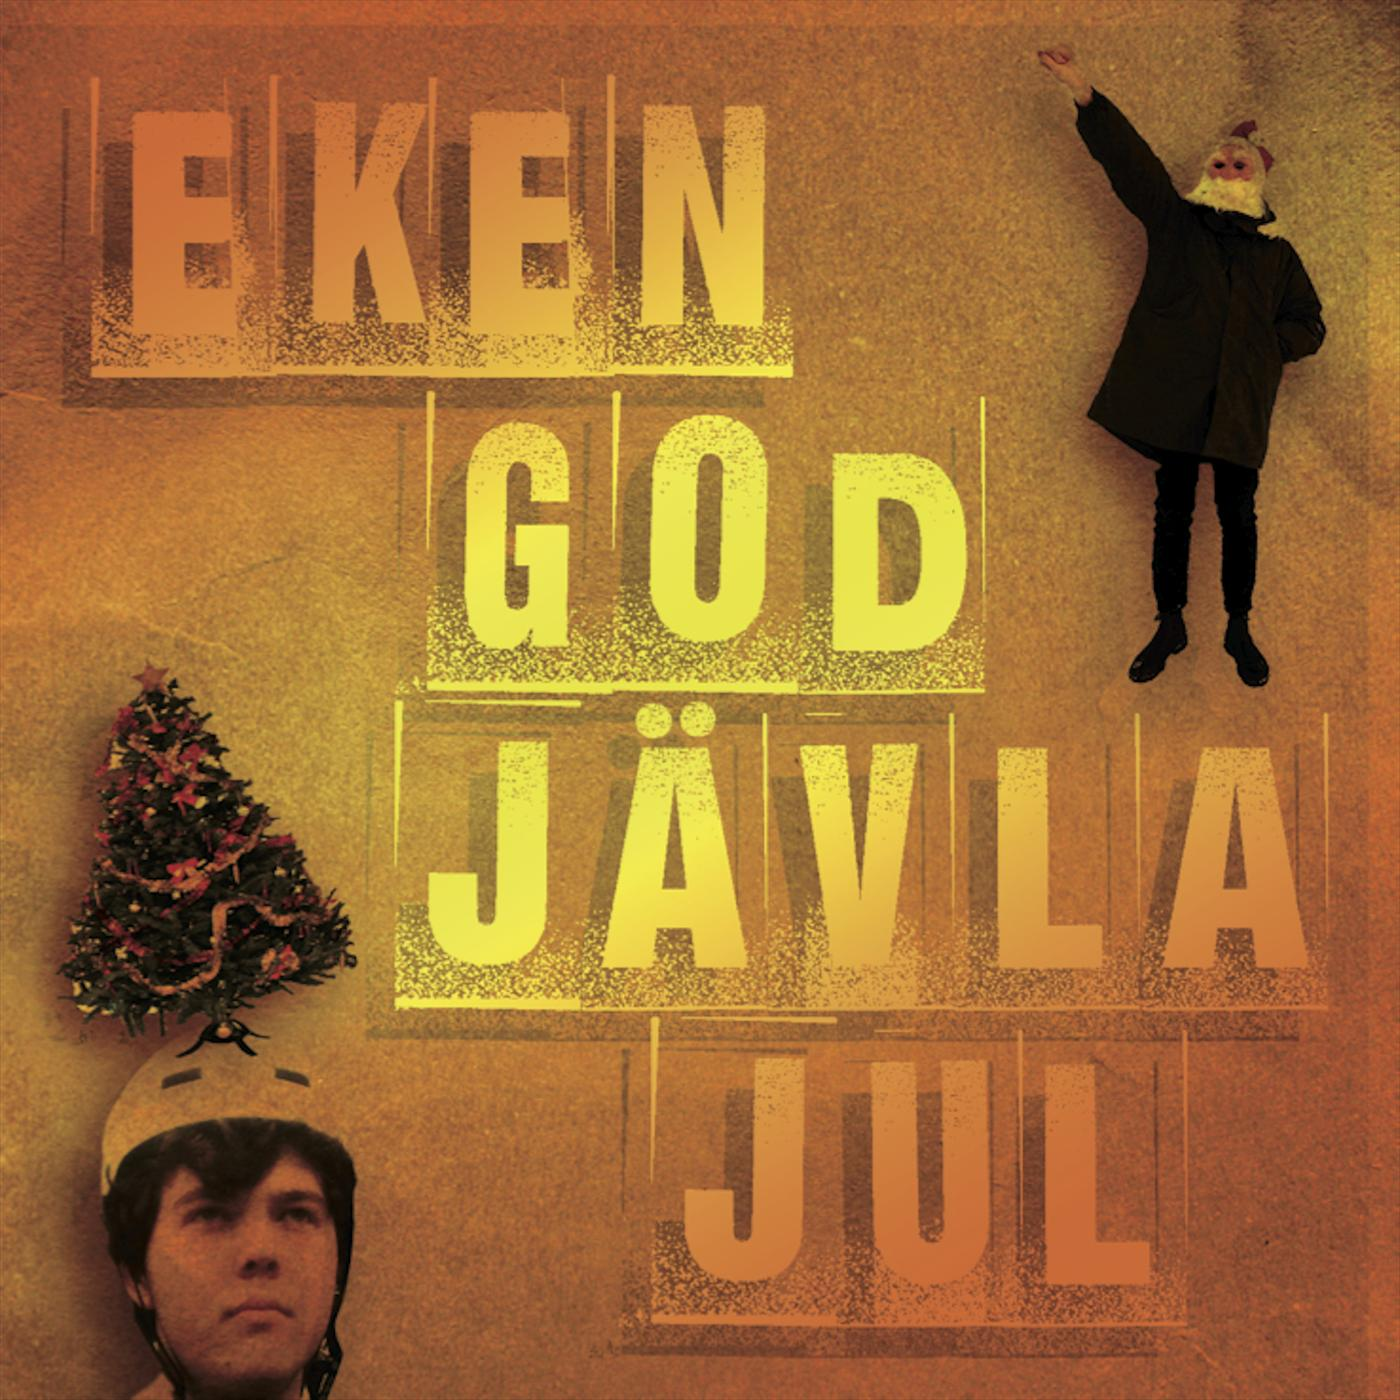 God Jävla Jul